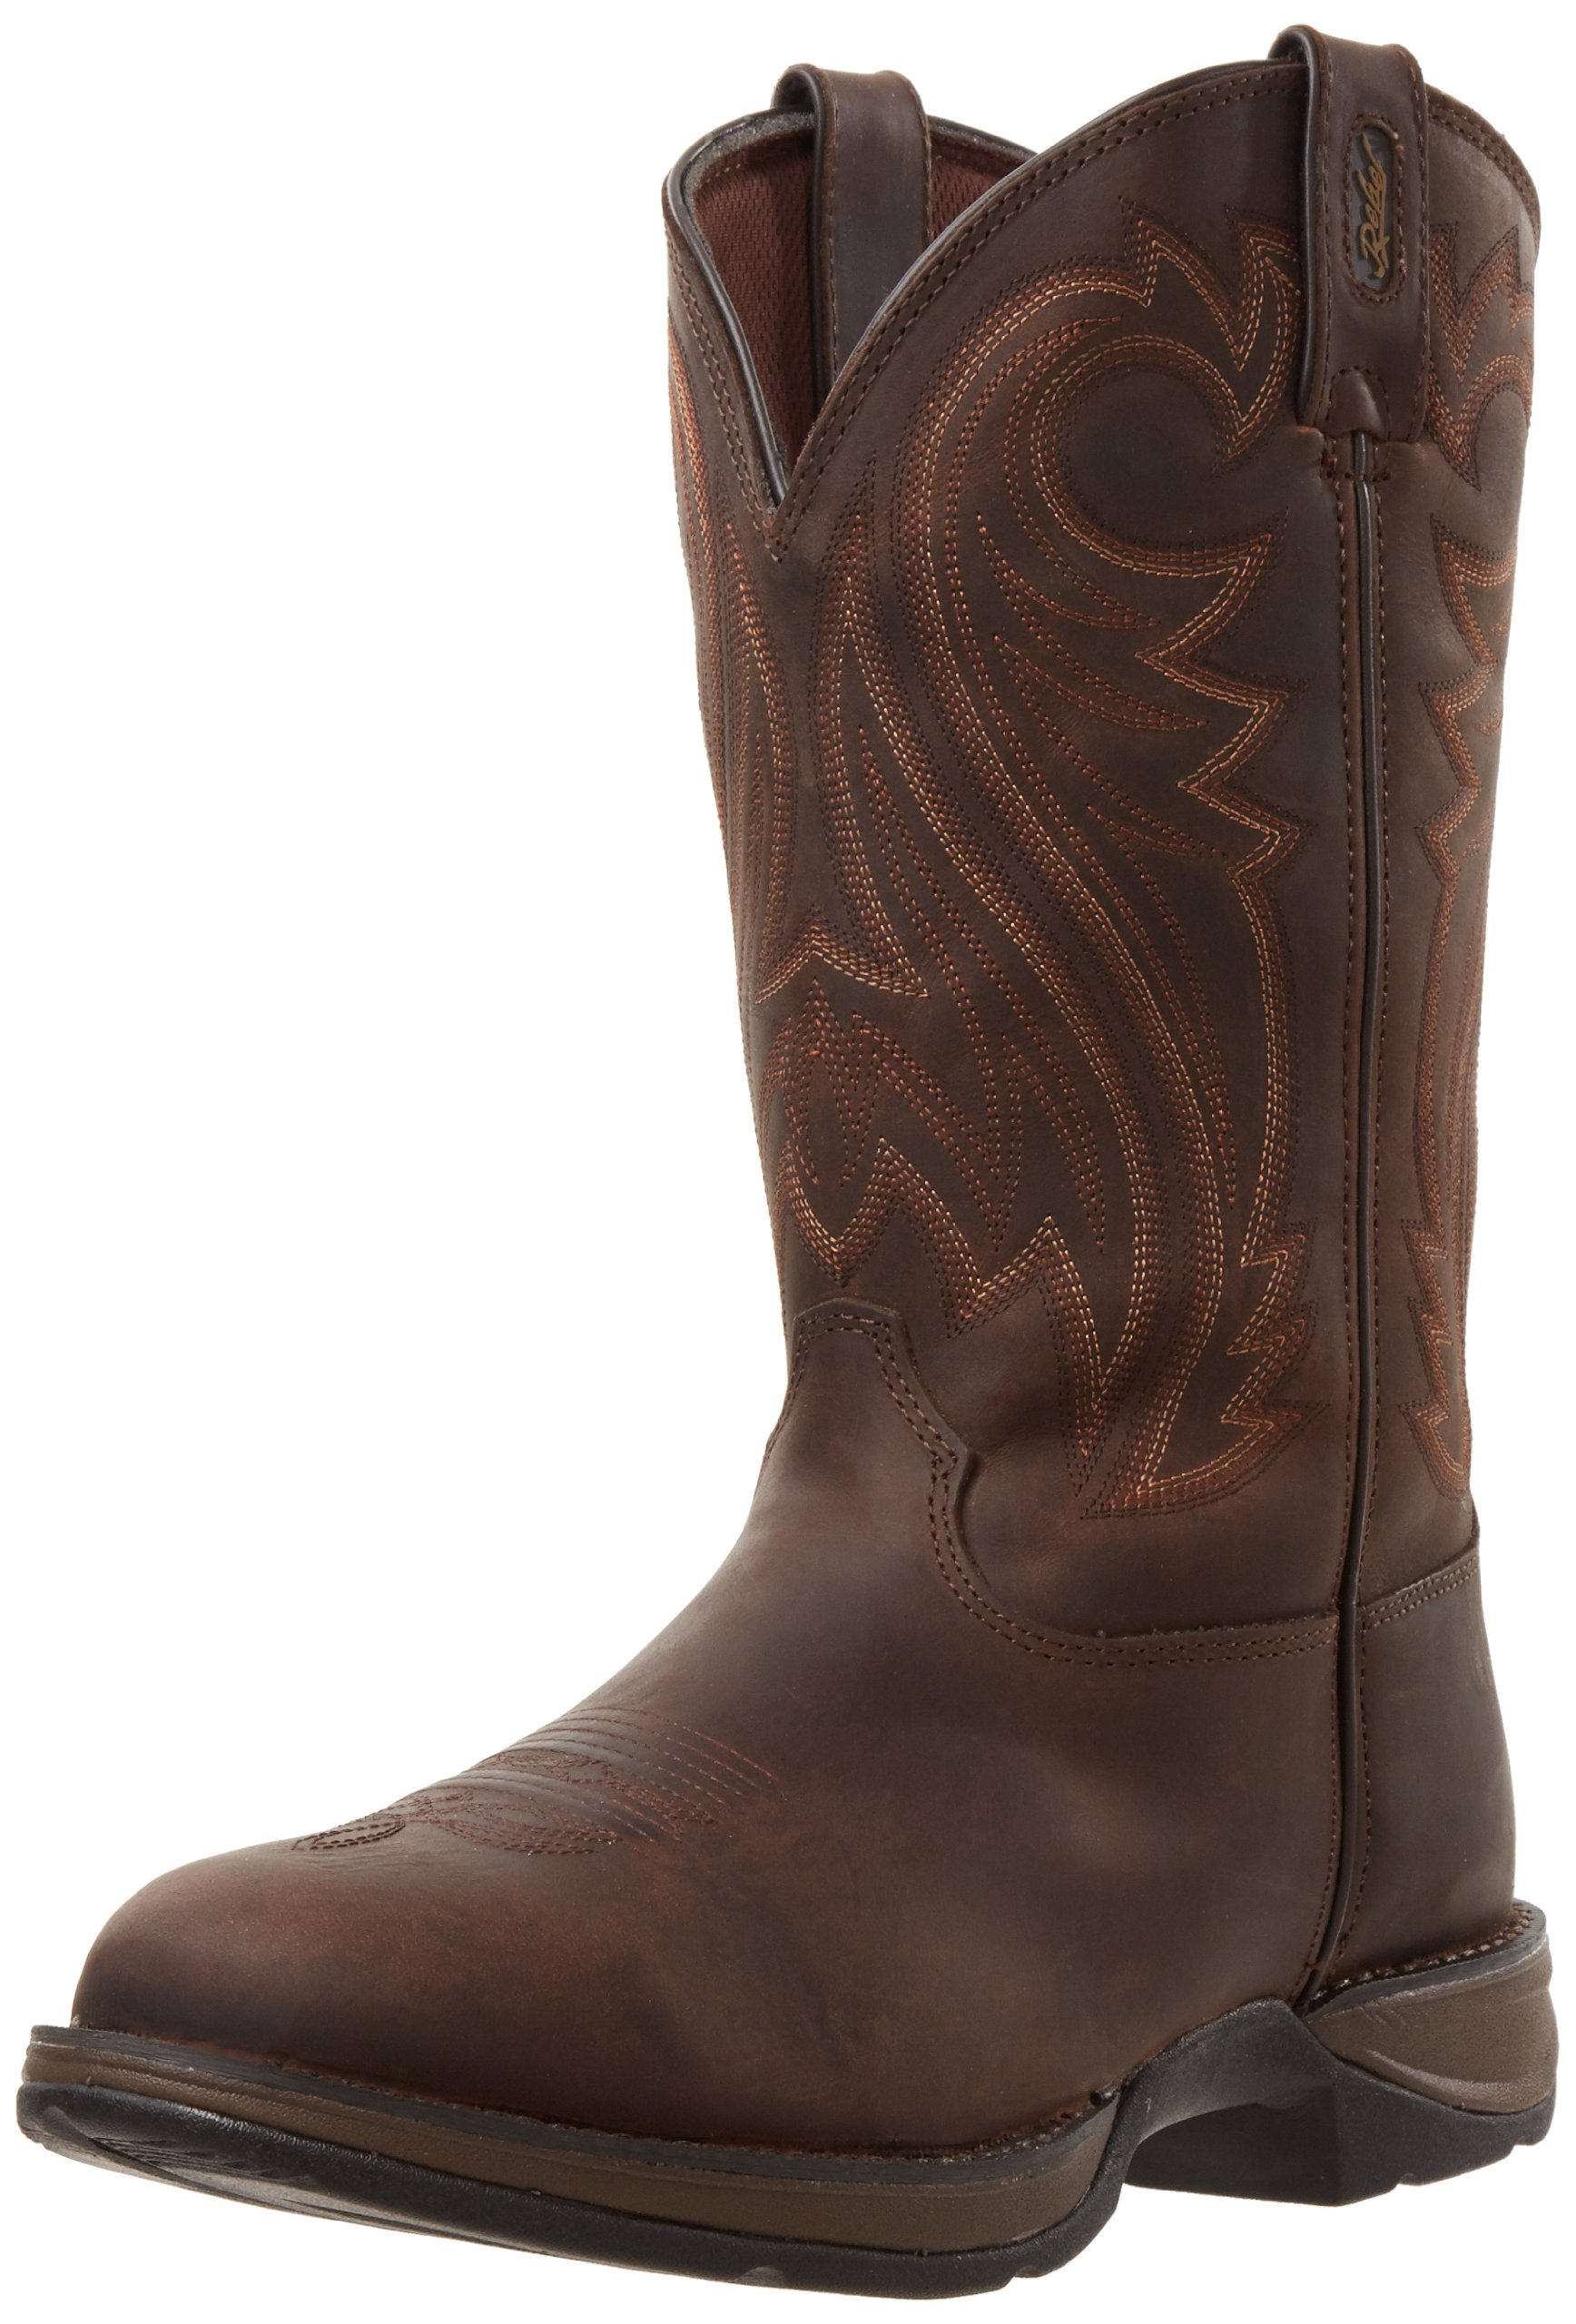 Durango Men's Rebel DB5464 Western Boot,Chocolate Wyoming,10.5 M US